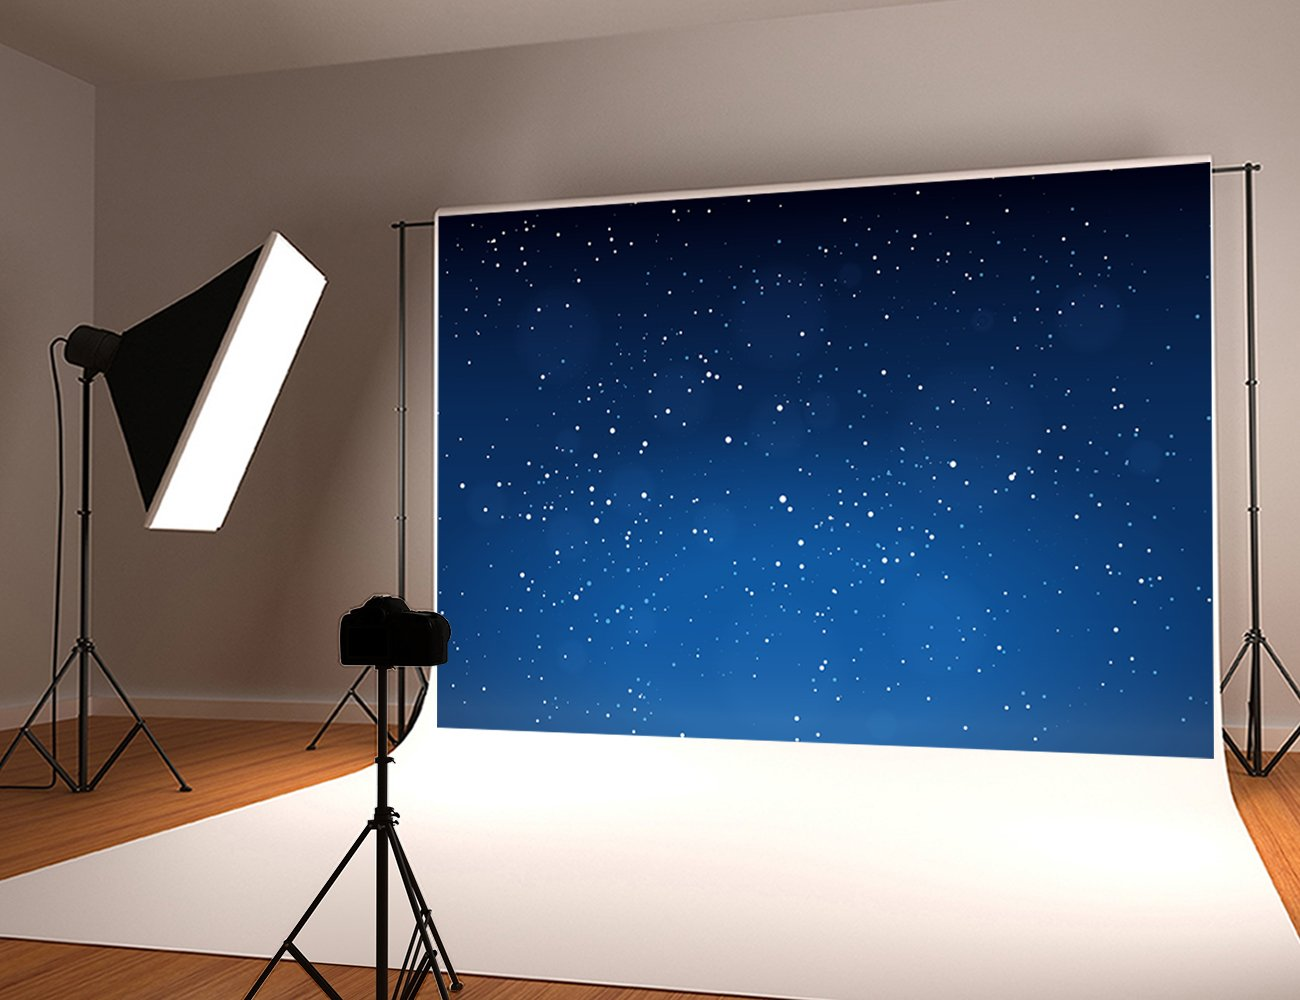 Kate 10x10ft Night Sky Photography Backdrops Bright Stars Background Microfiber Fantasy Photo Studio Backdrop by Kate